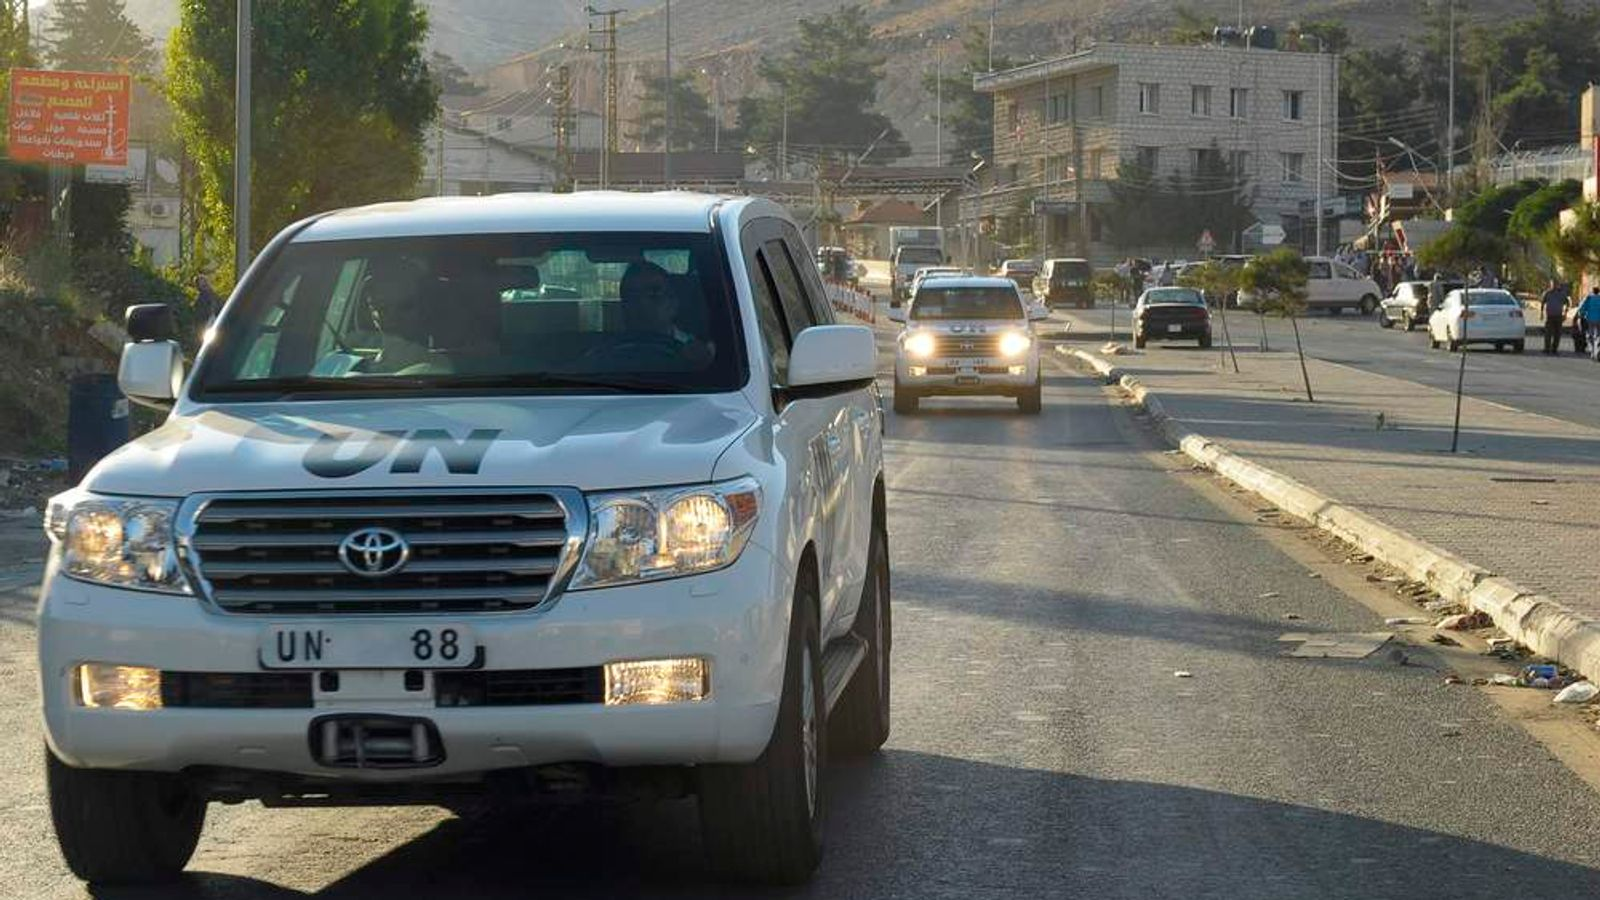 UN inspectors leave the Masnaa border crossing between Lebanon and Syria